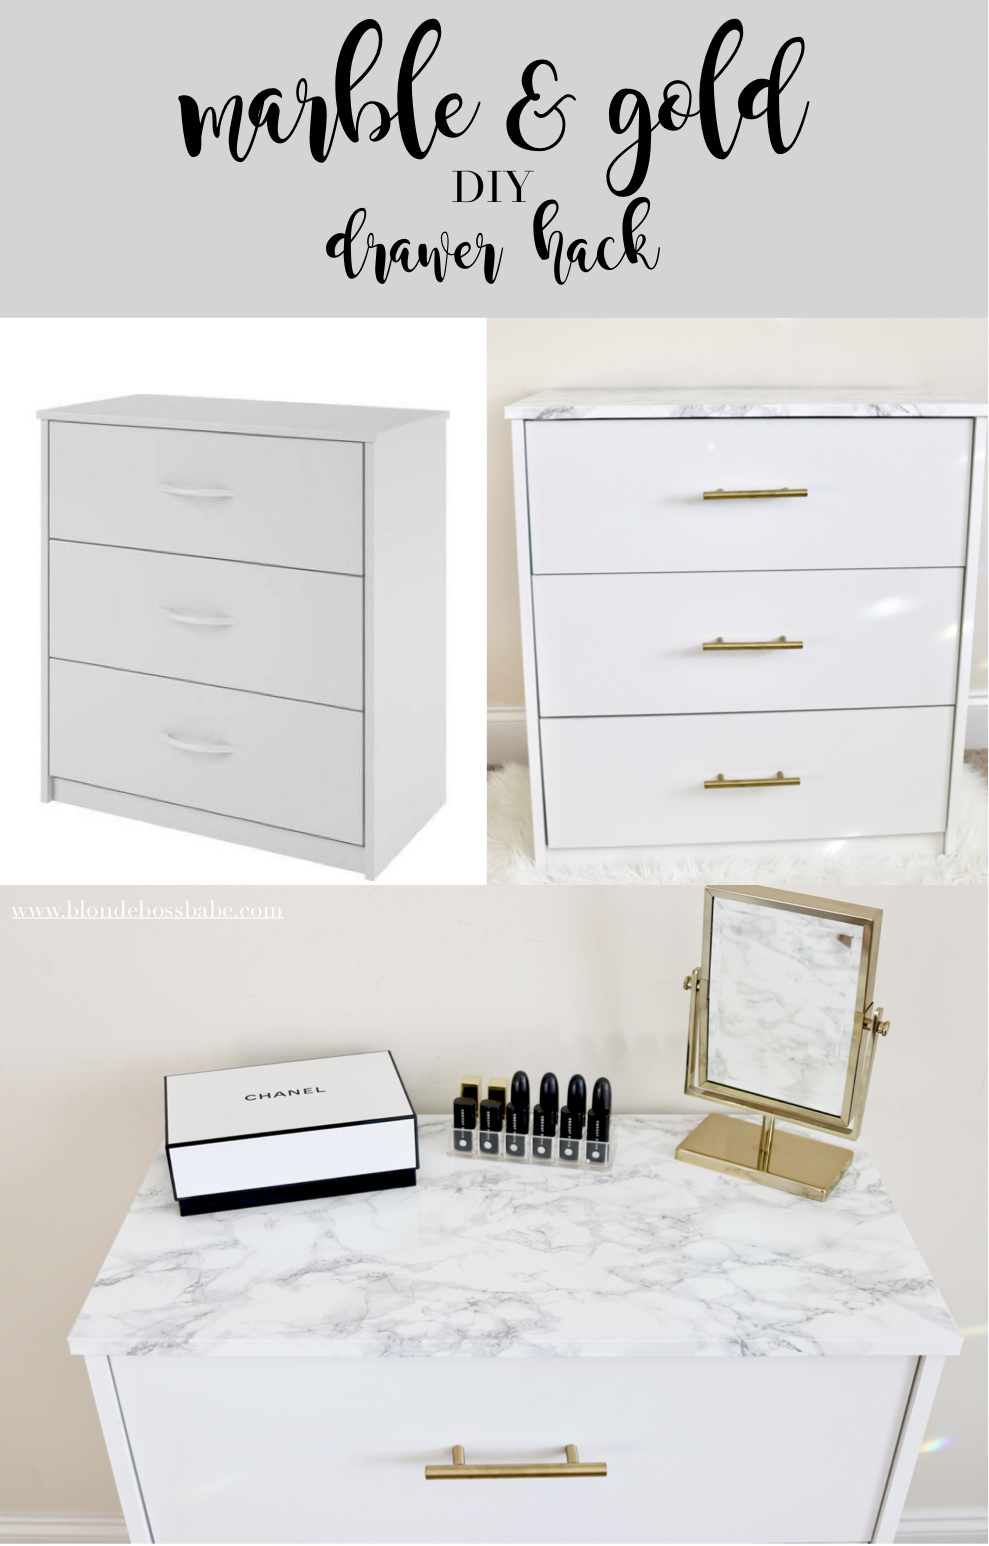 marble and gold drawer hack diy